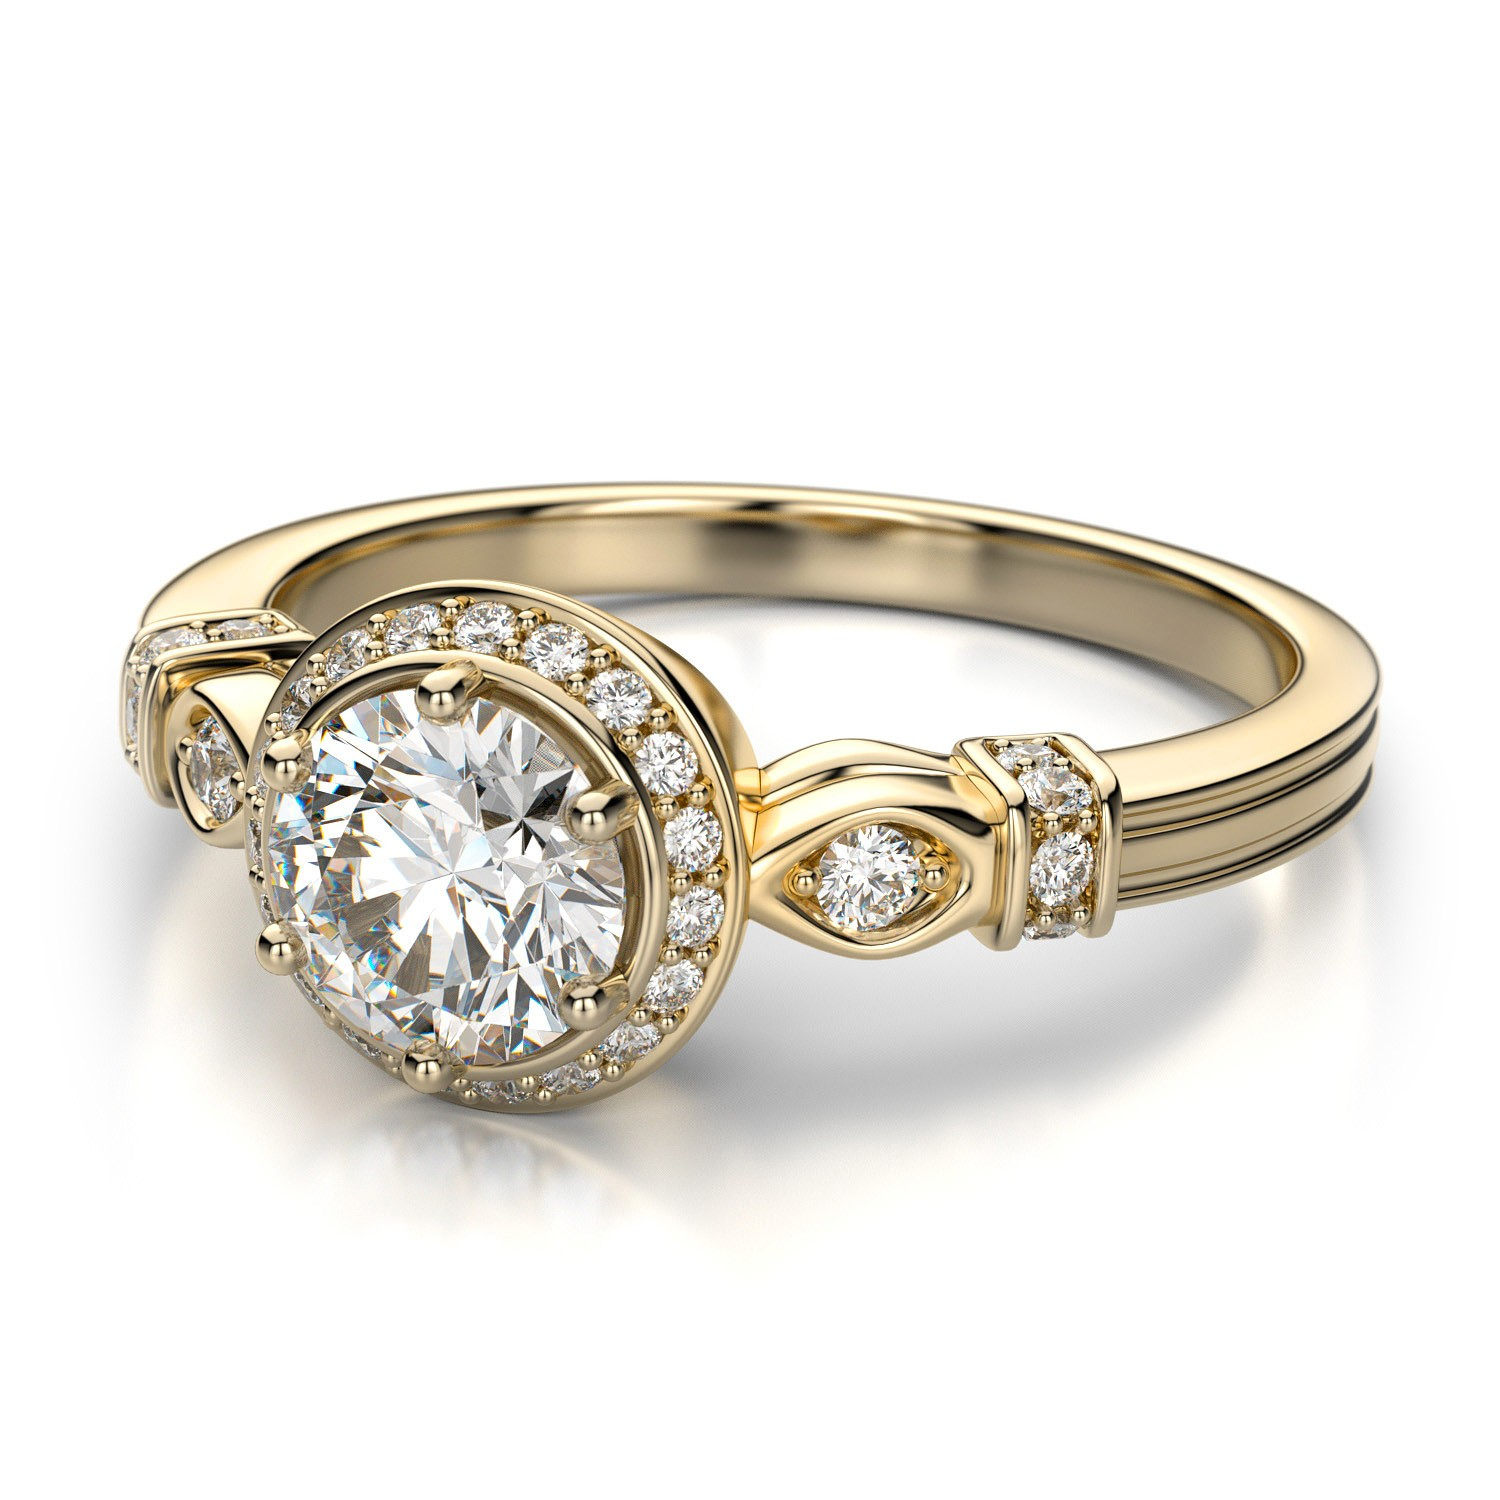 Buy online ANTIQUE WEDDING RINGS – Pretty Jewelry – Exquisite